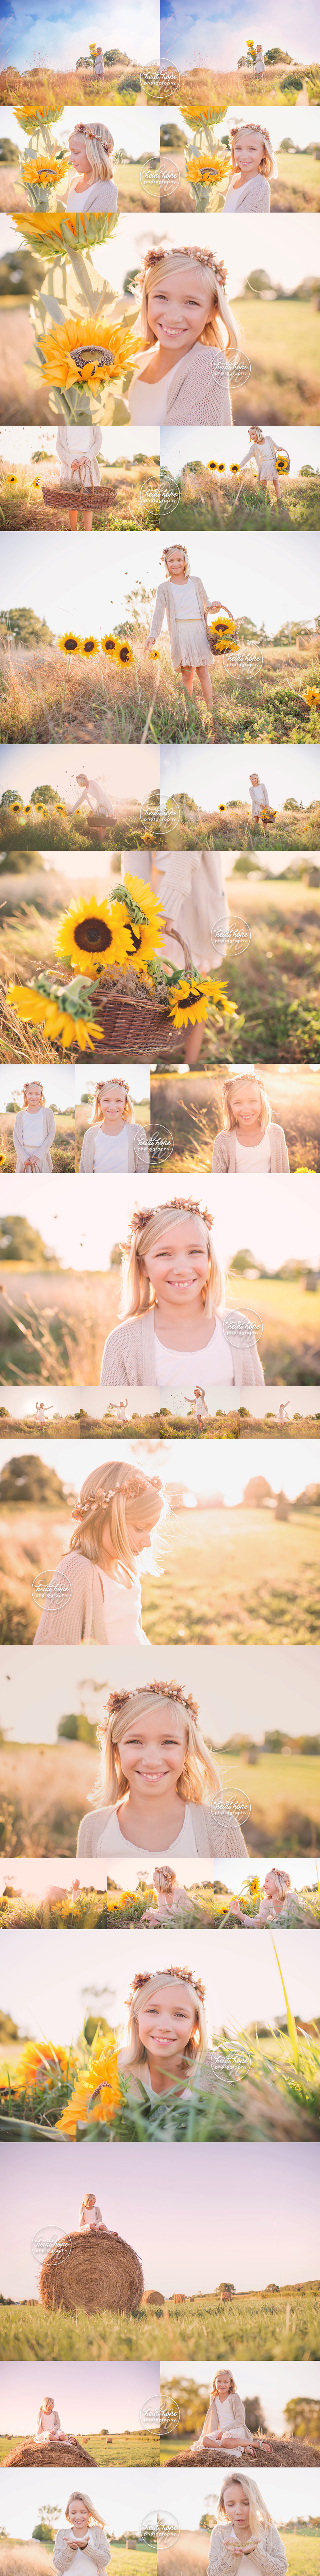 autumn-sunflower-photo-session-in-a-field-by-tiverton-rhode-island-photographer